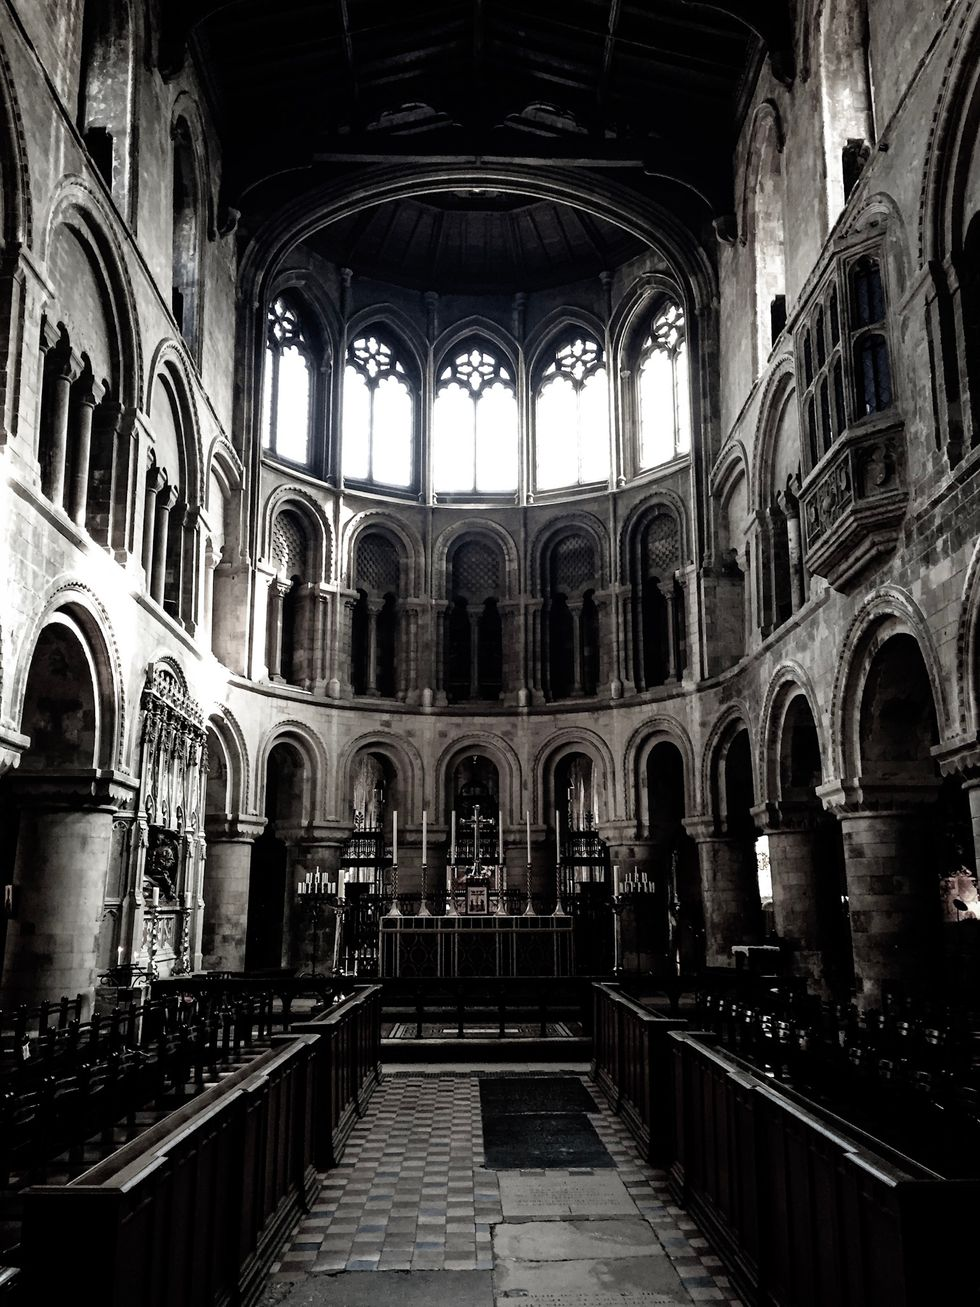 How a King's Jester Built London's Oldest Church